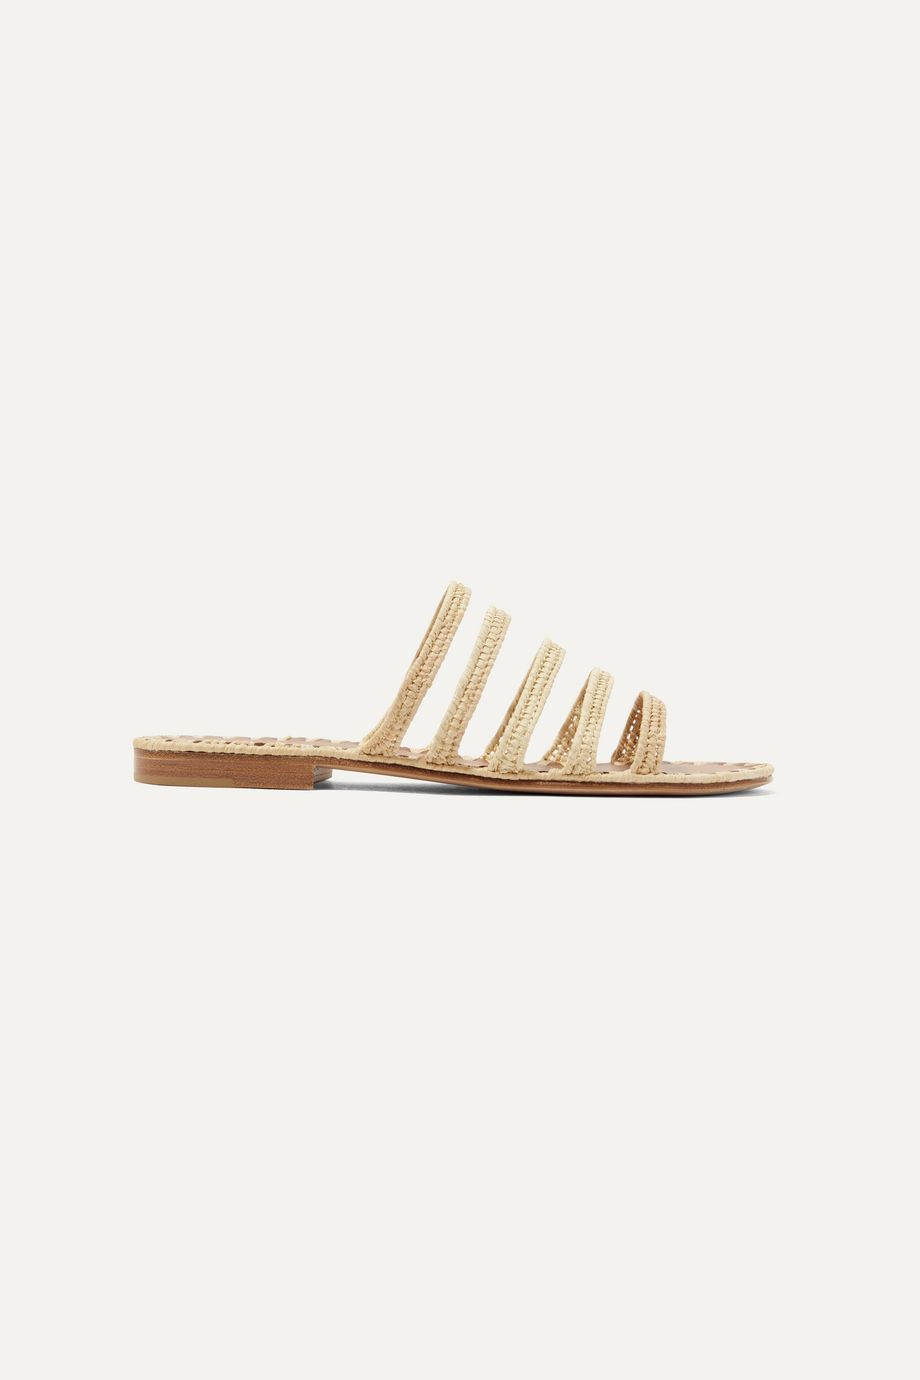 Carrie Forbes Asmaa woven raffia sandals